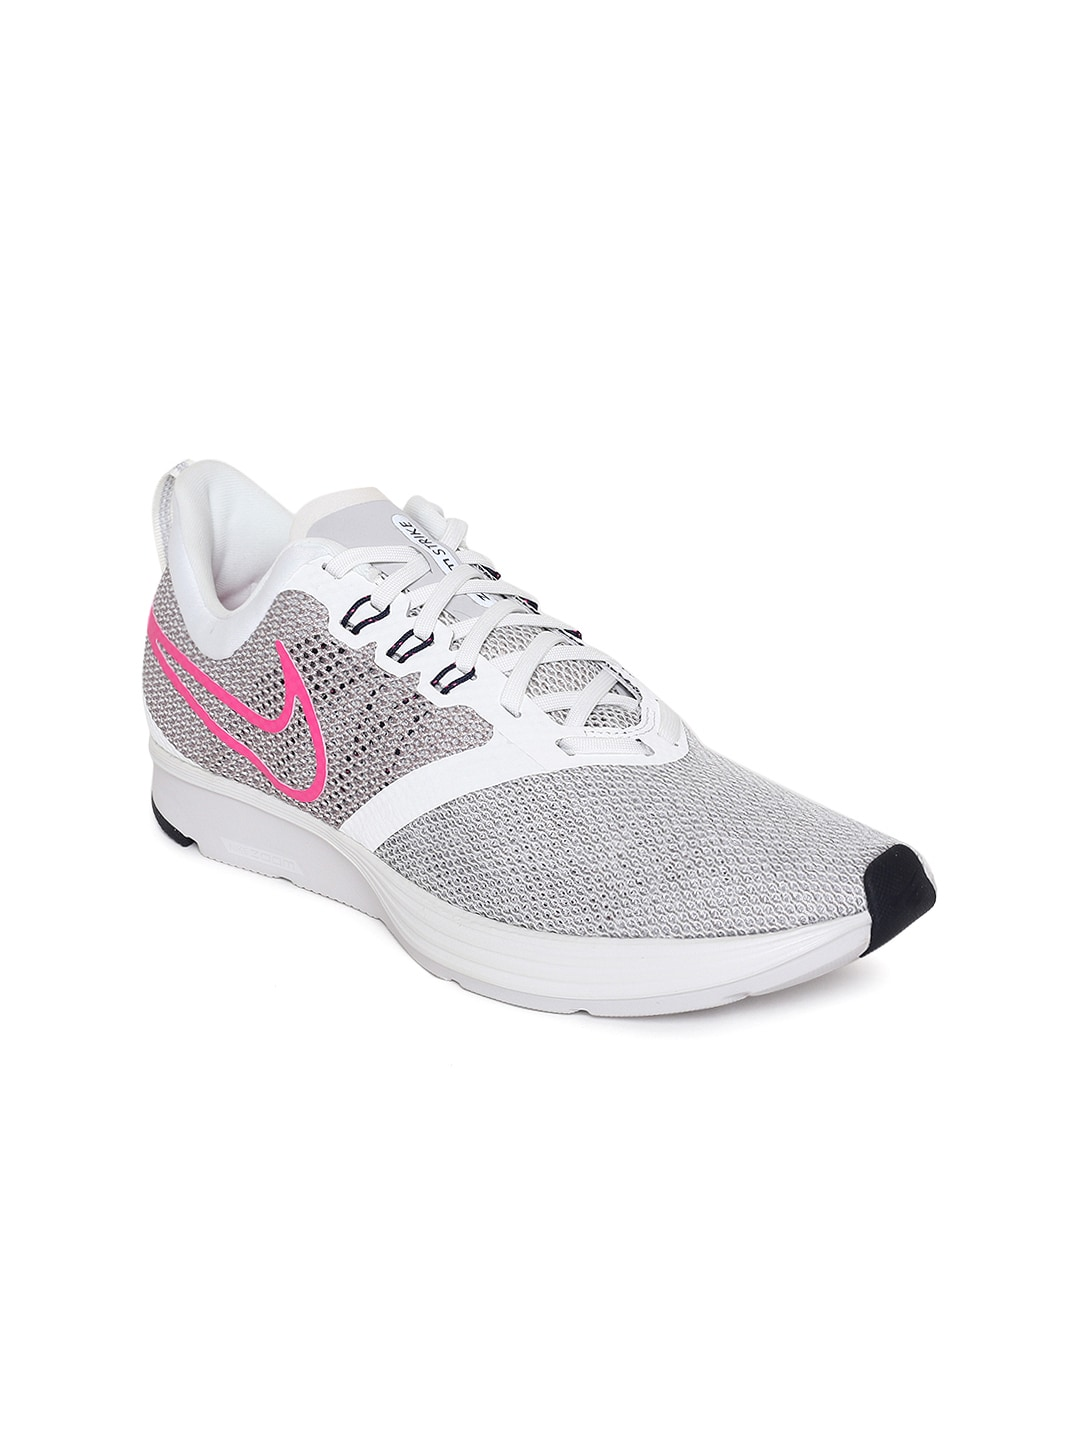 d546903c45a99 Sports Shoes for Women - Buy Women Sports Shoes Online